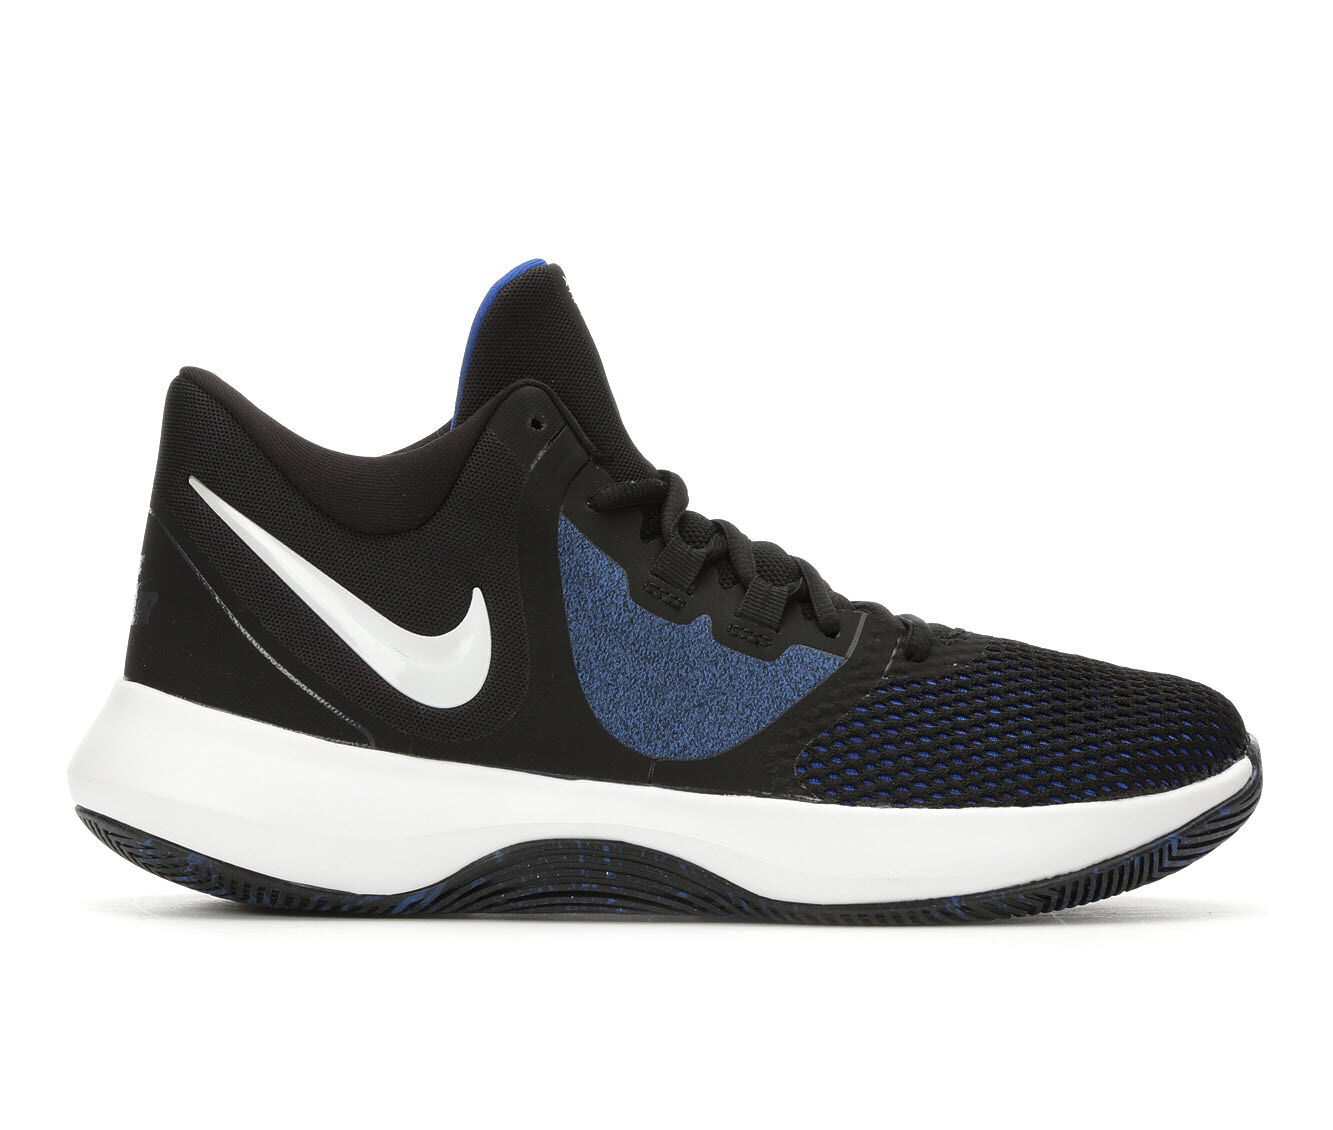 Factory Outlet Men's Nike Air Precision II High Top Basketball Shoes Blk/Wht/Blu